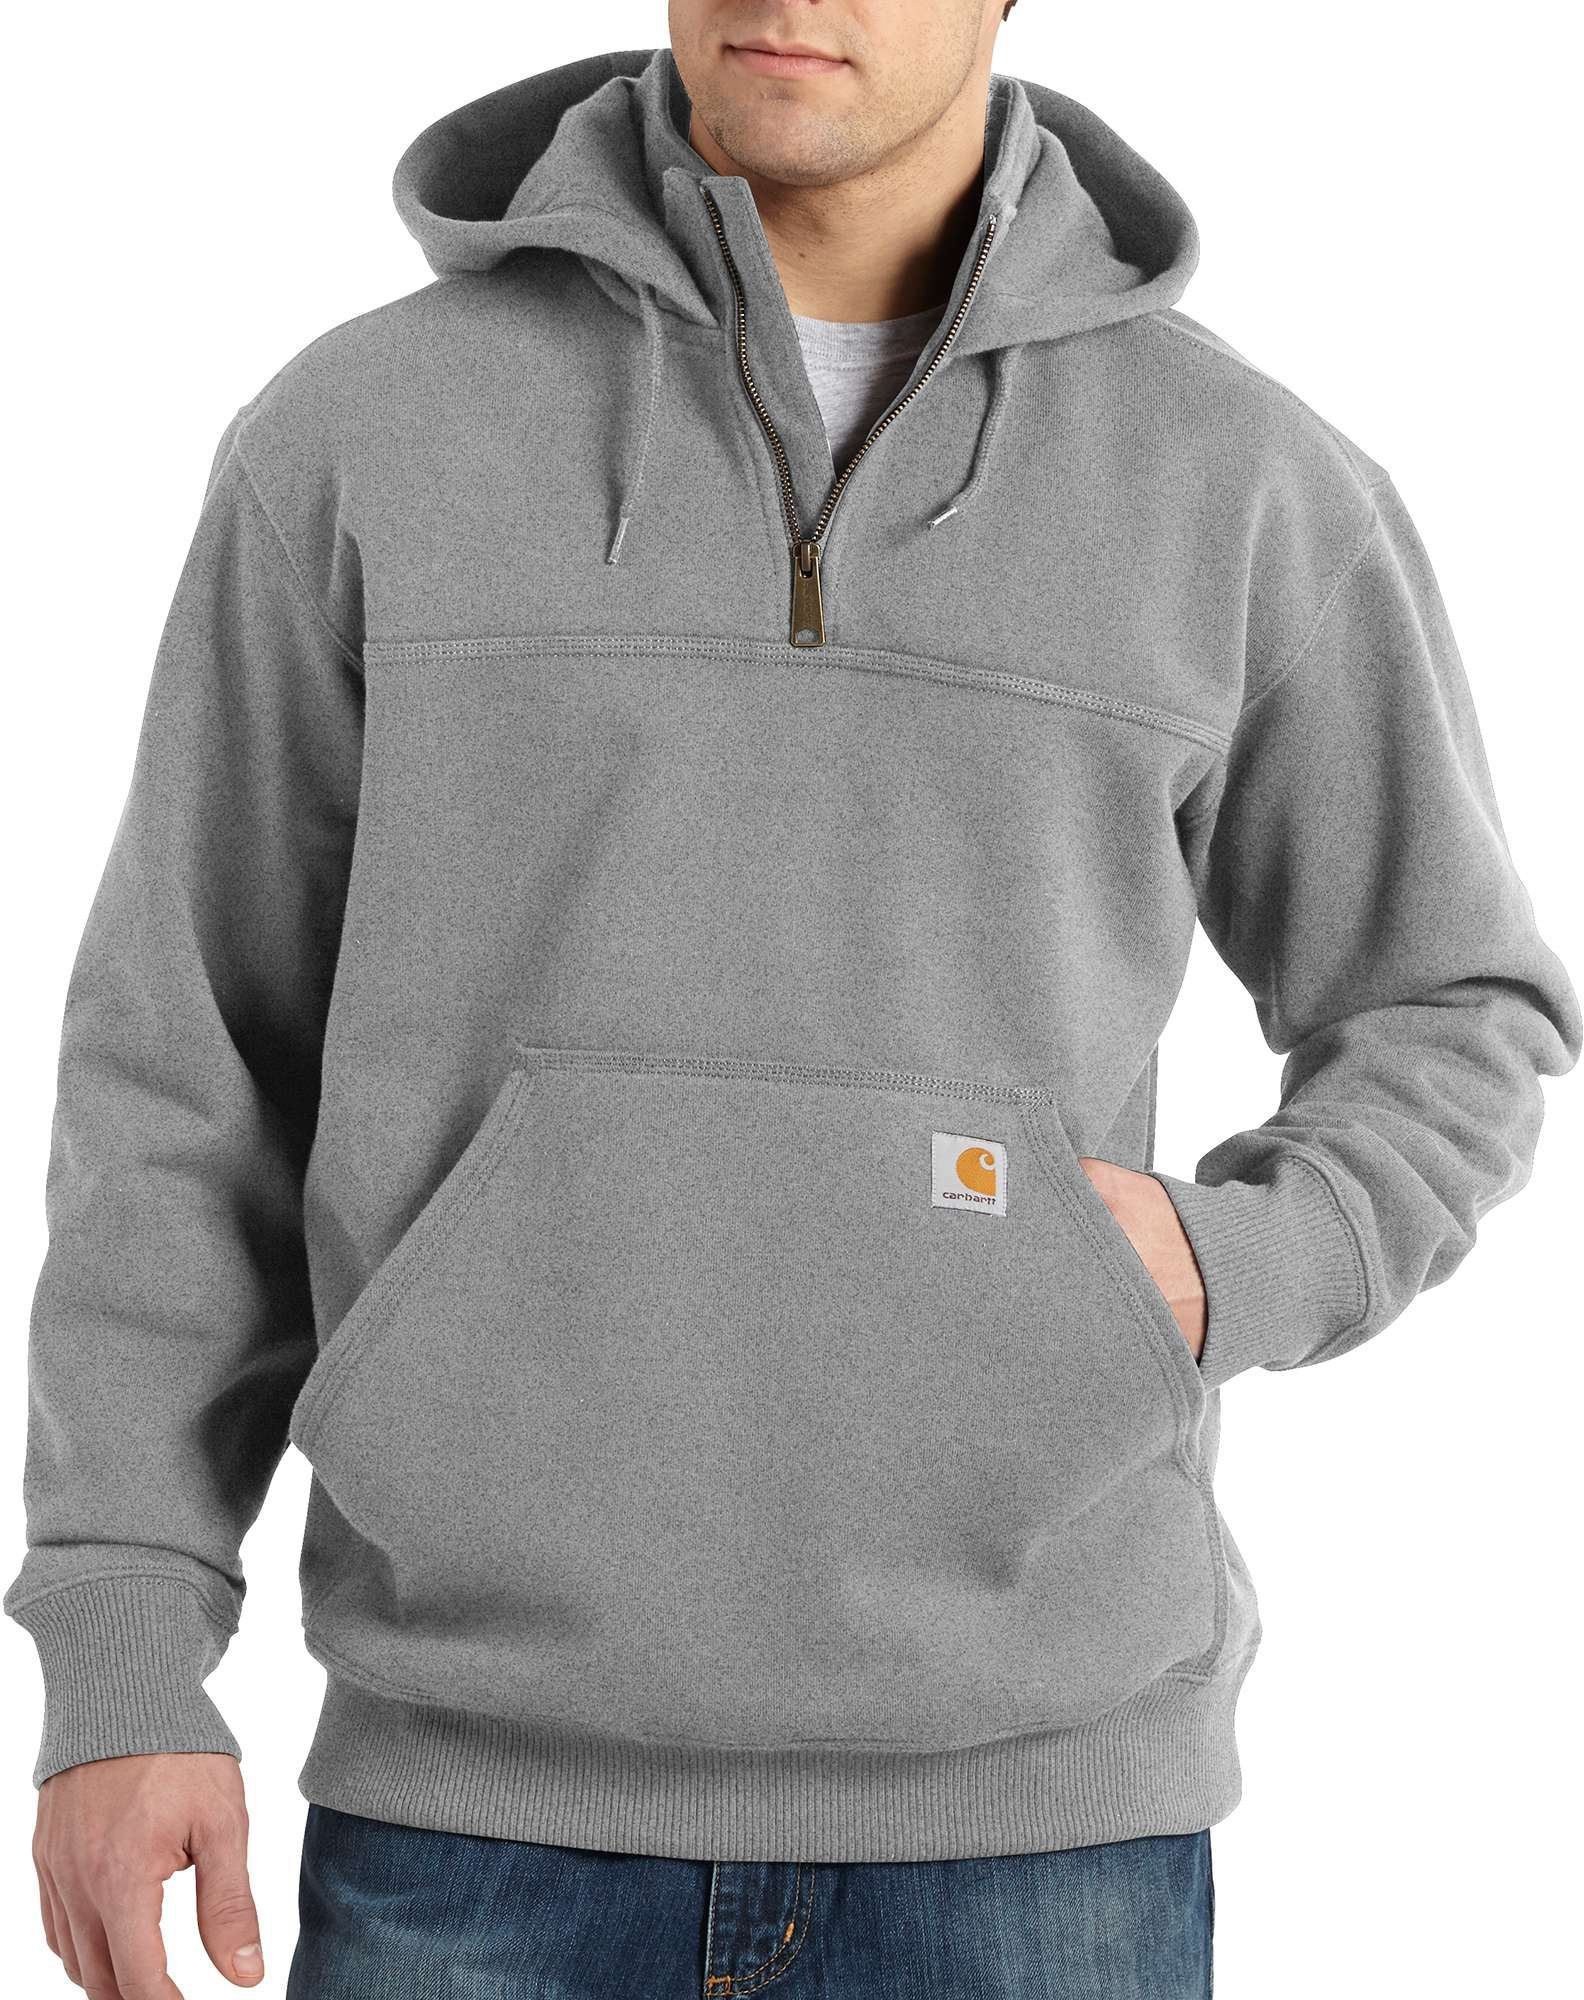 Carhartt Sweatshirts & Hoodies | DICK'S Sporting Goods